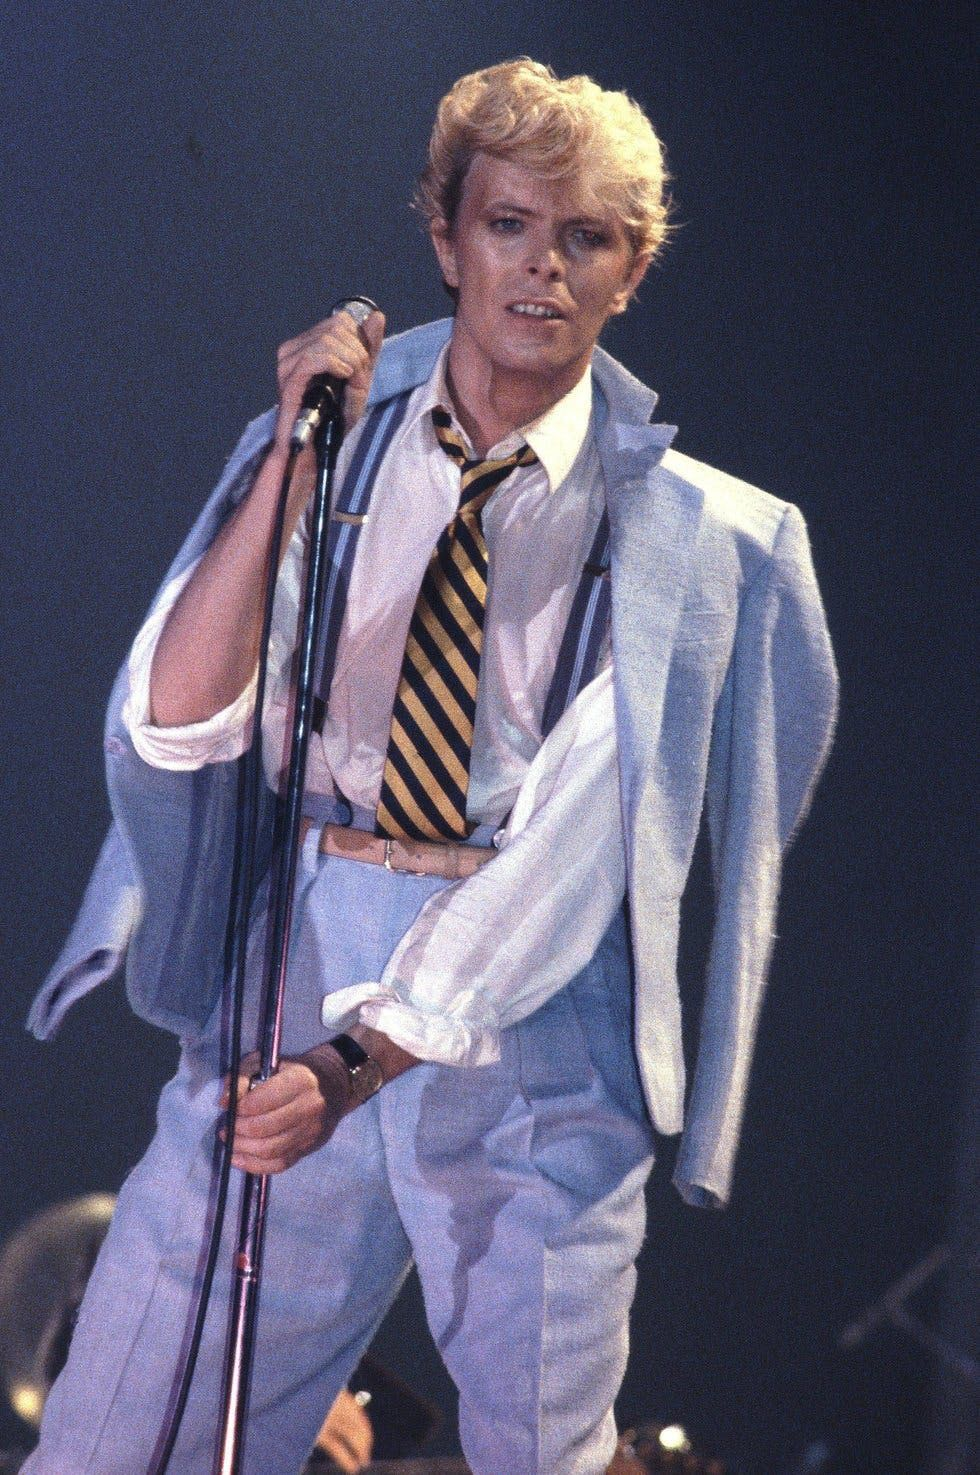 David Bowie 25 Of His Most Iconic Fashion Moments David Bowie Fashion David Bowie Starman David Bowie